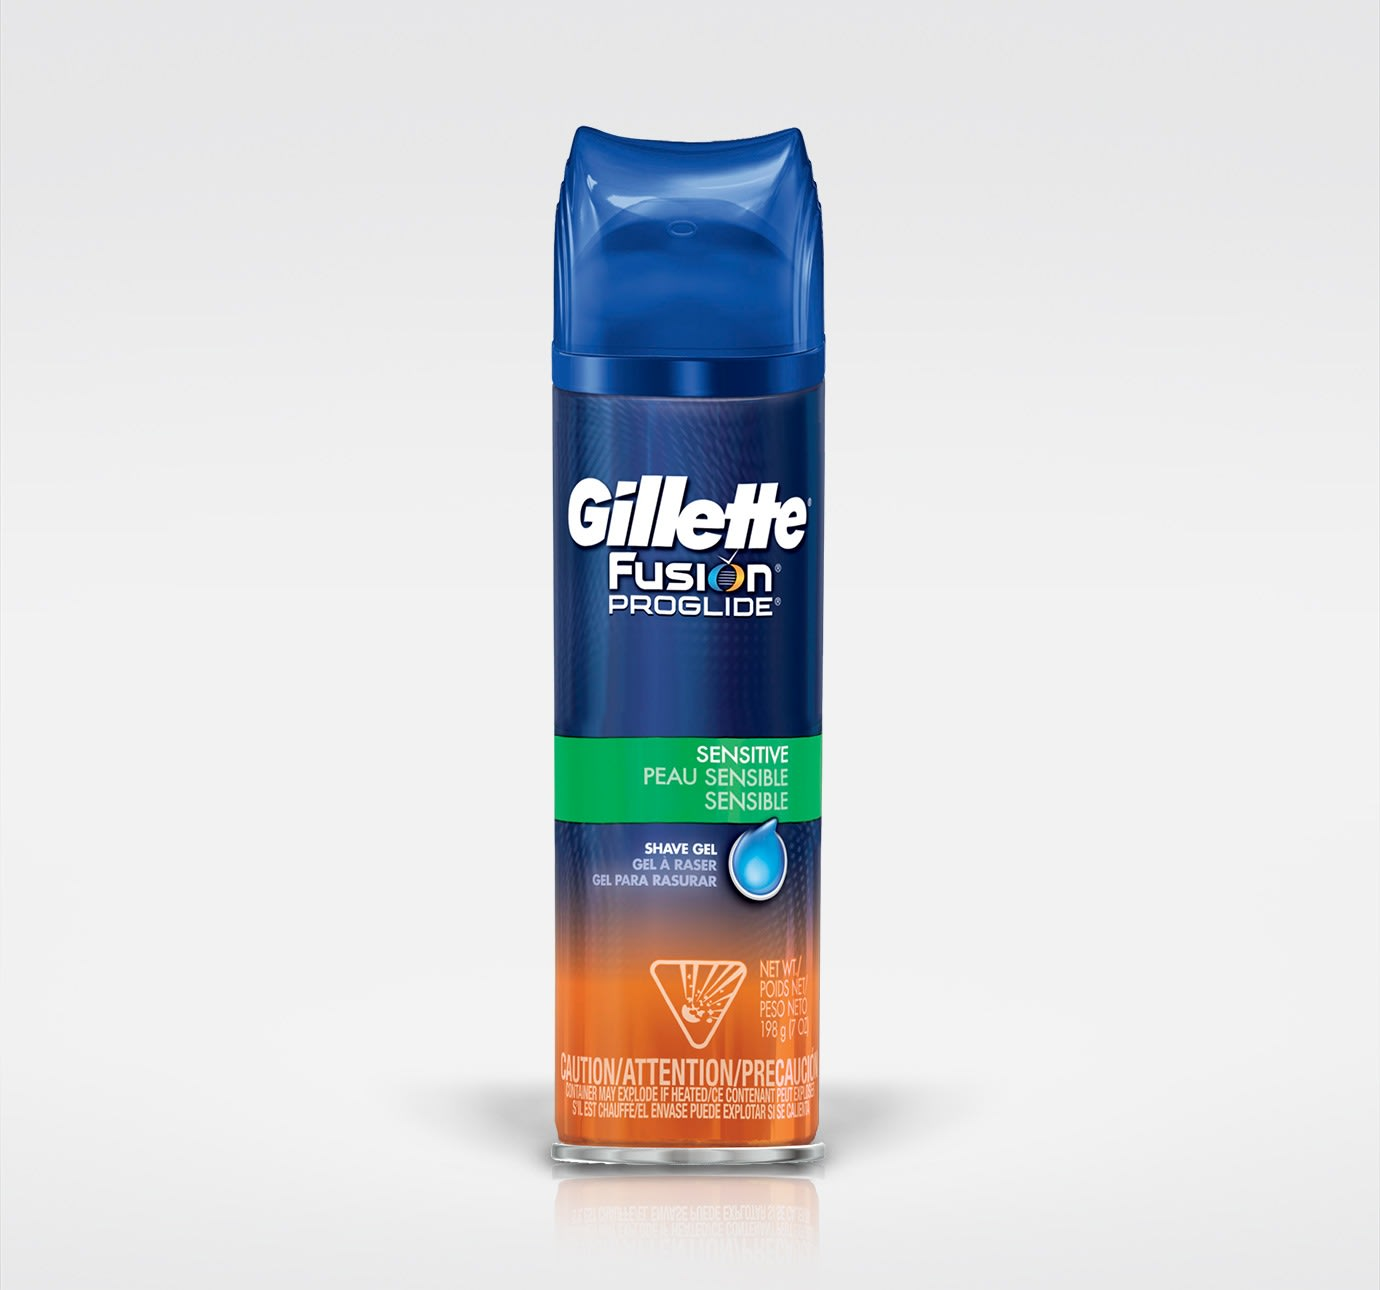 gillette fusion proglide sensitive shave gel